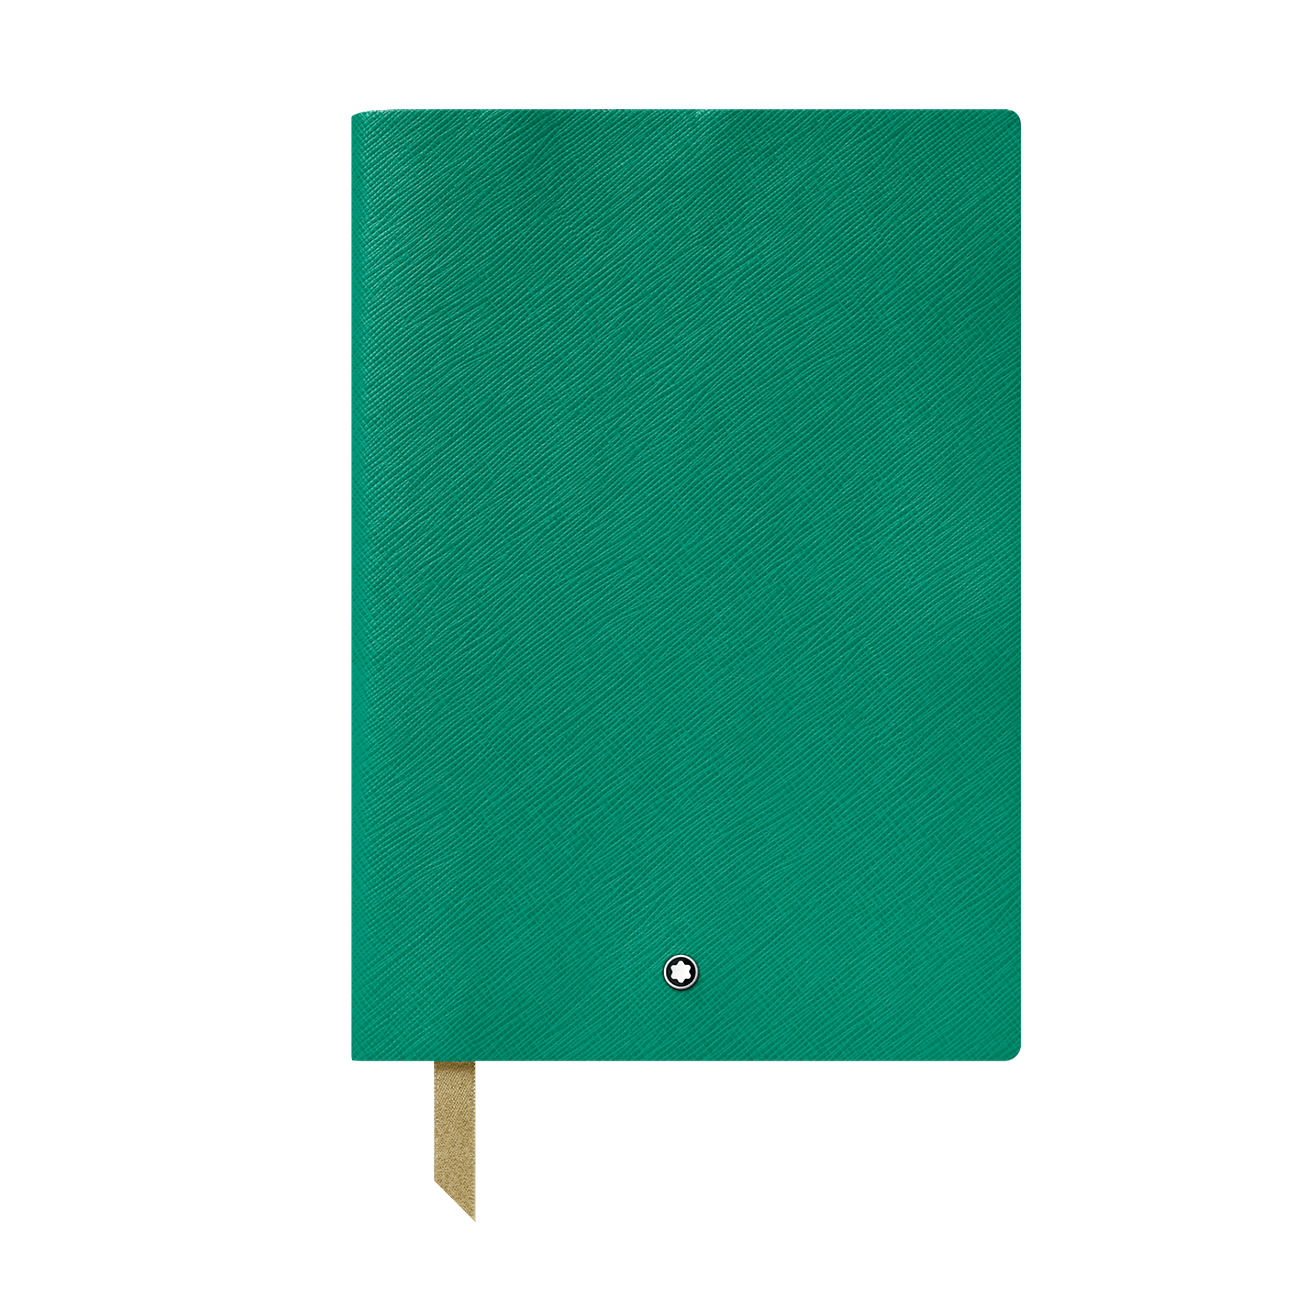 NOTEBOOK # 148 Lined -192 pages